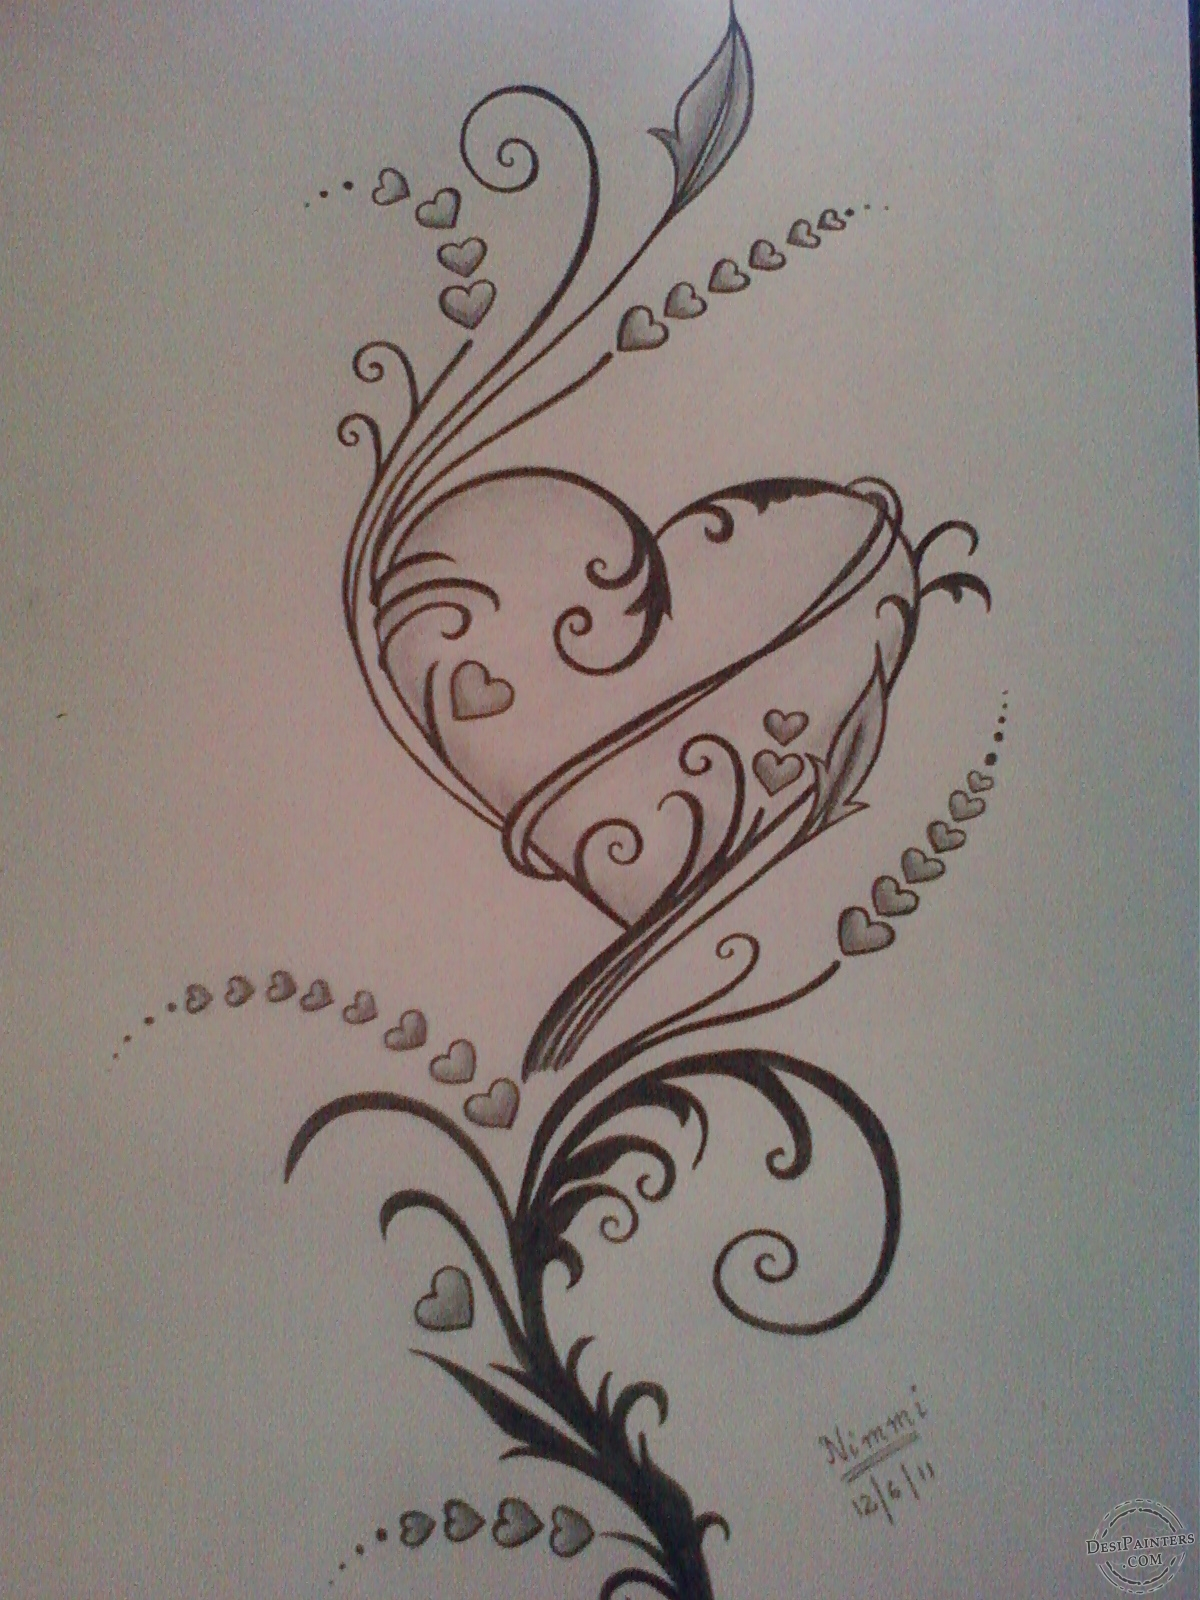 Drawn music notes piano Sketches Pinterest Of Love drawings